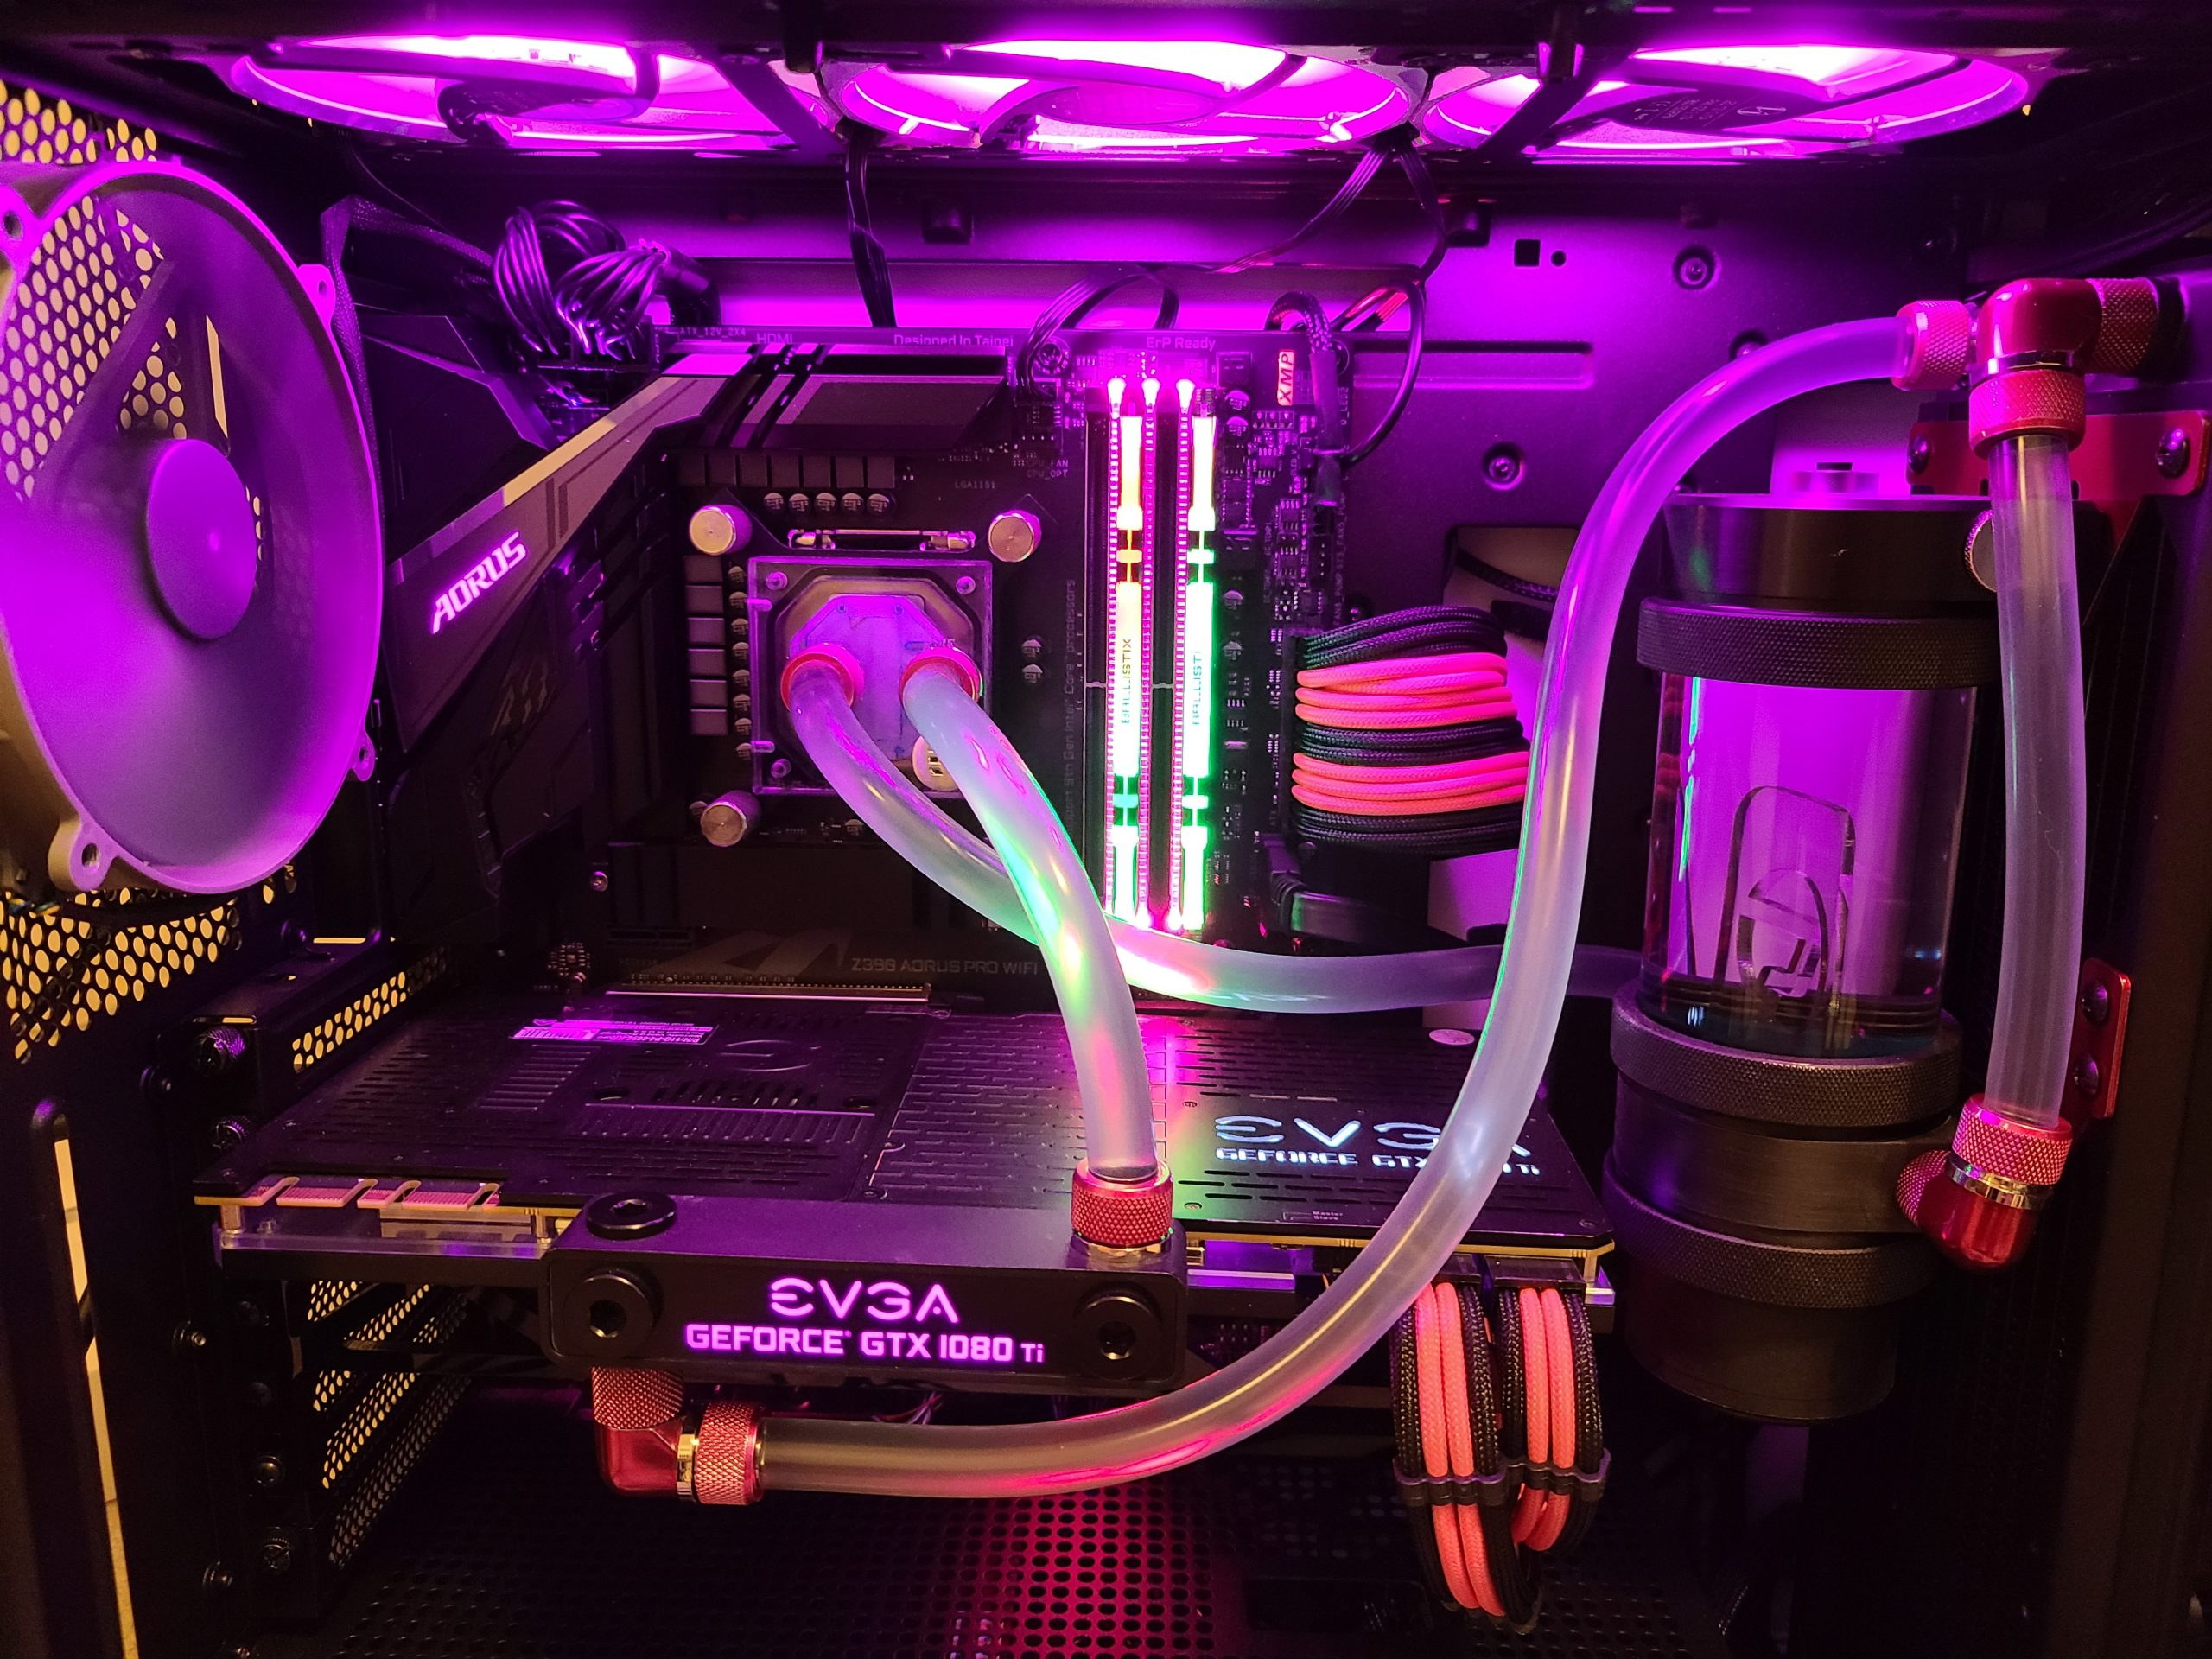 custom water loop